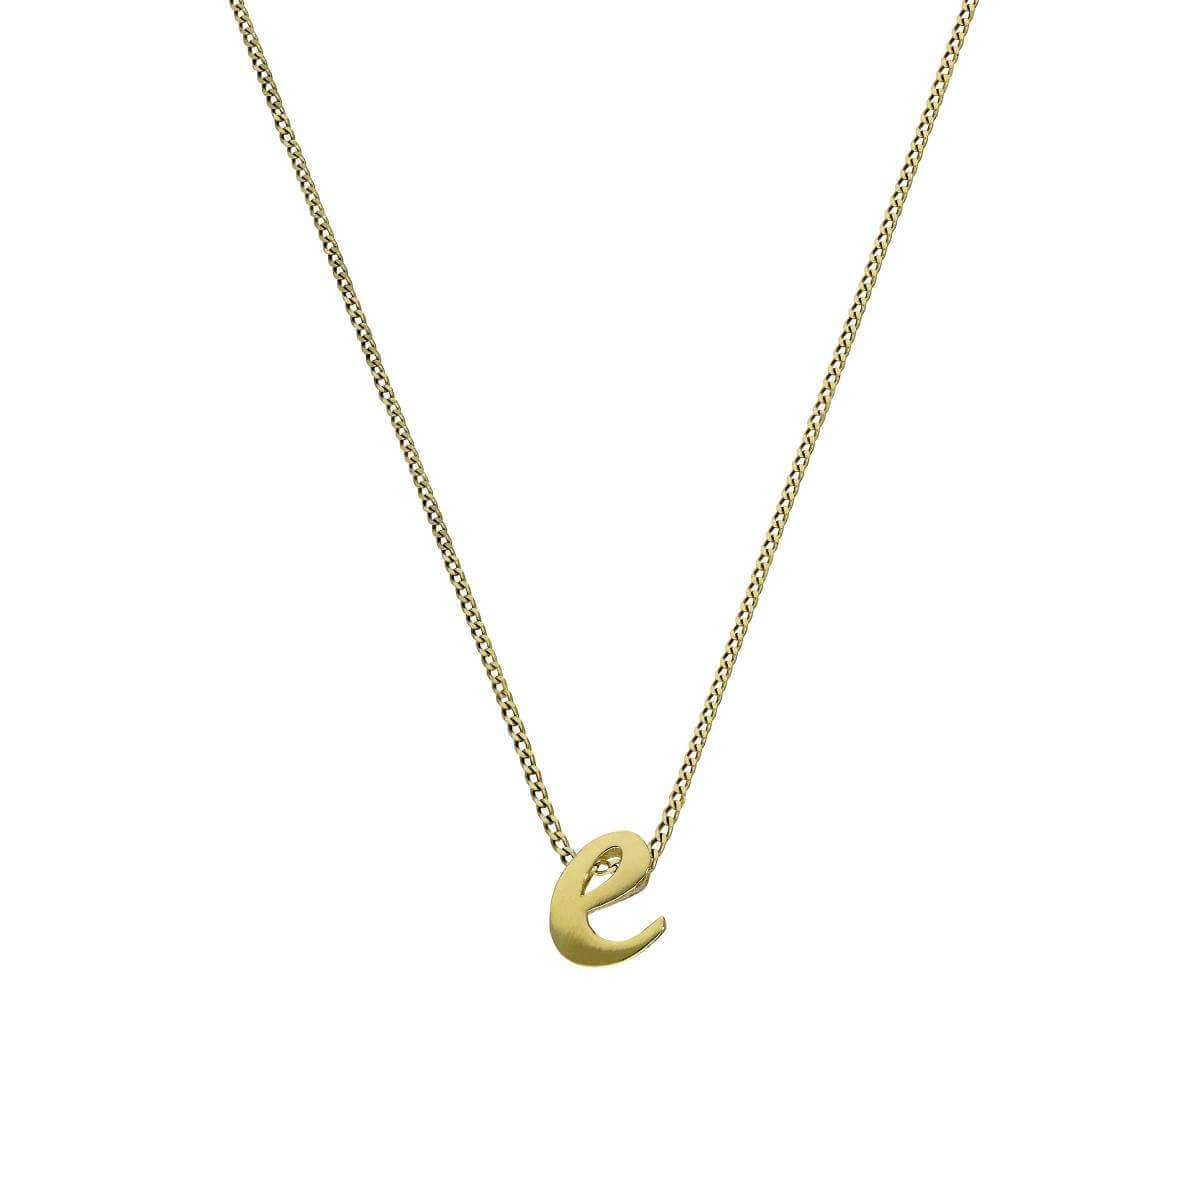 Tiny 9ct Gold Alphabet Letter E Pendant on Chain 16 - 20 Inches